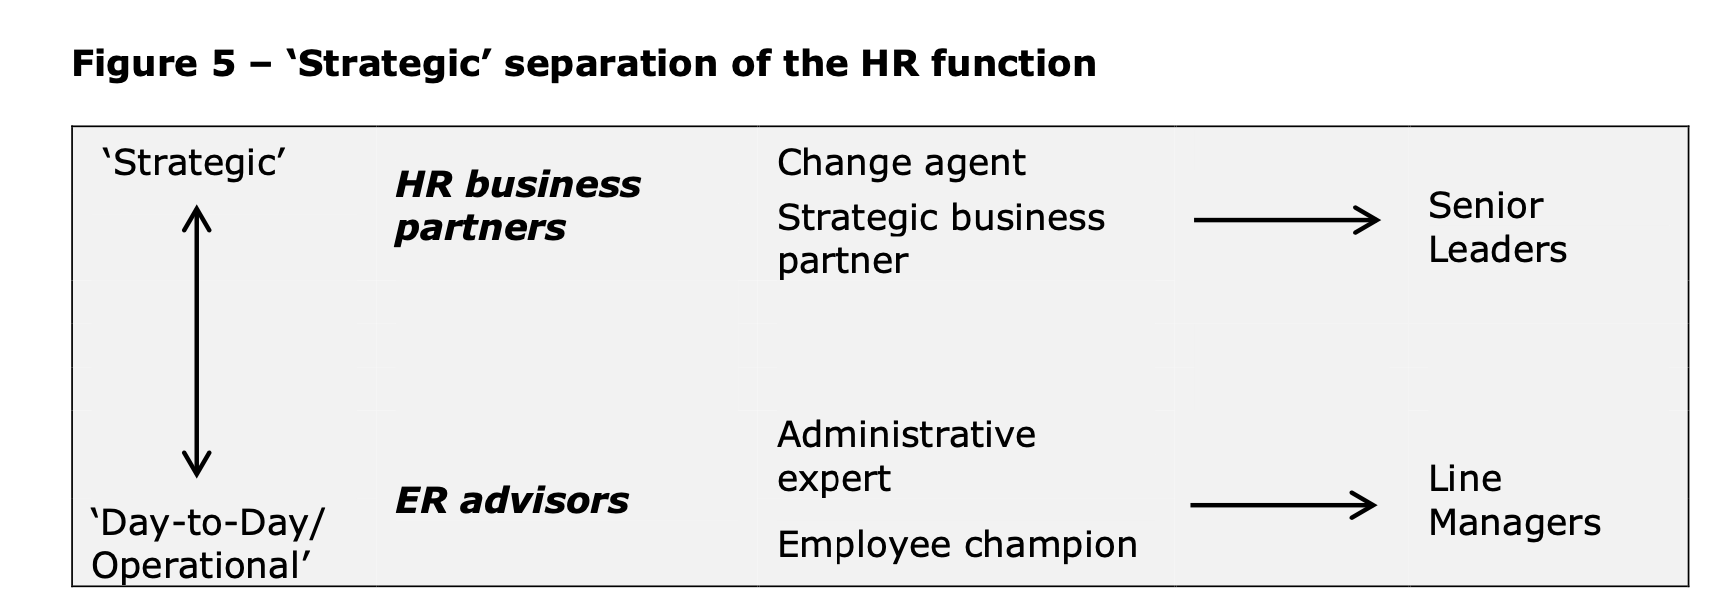 Strategic separation of the HR function diagram